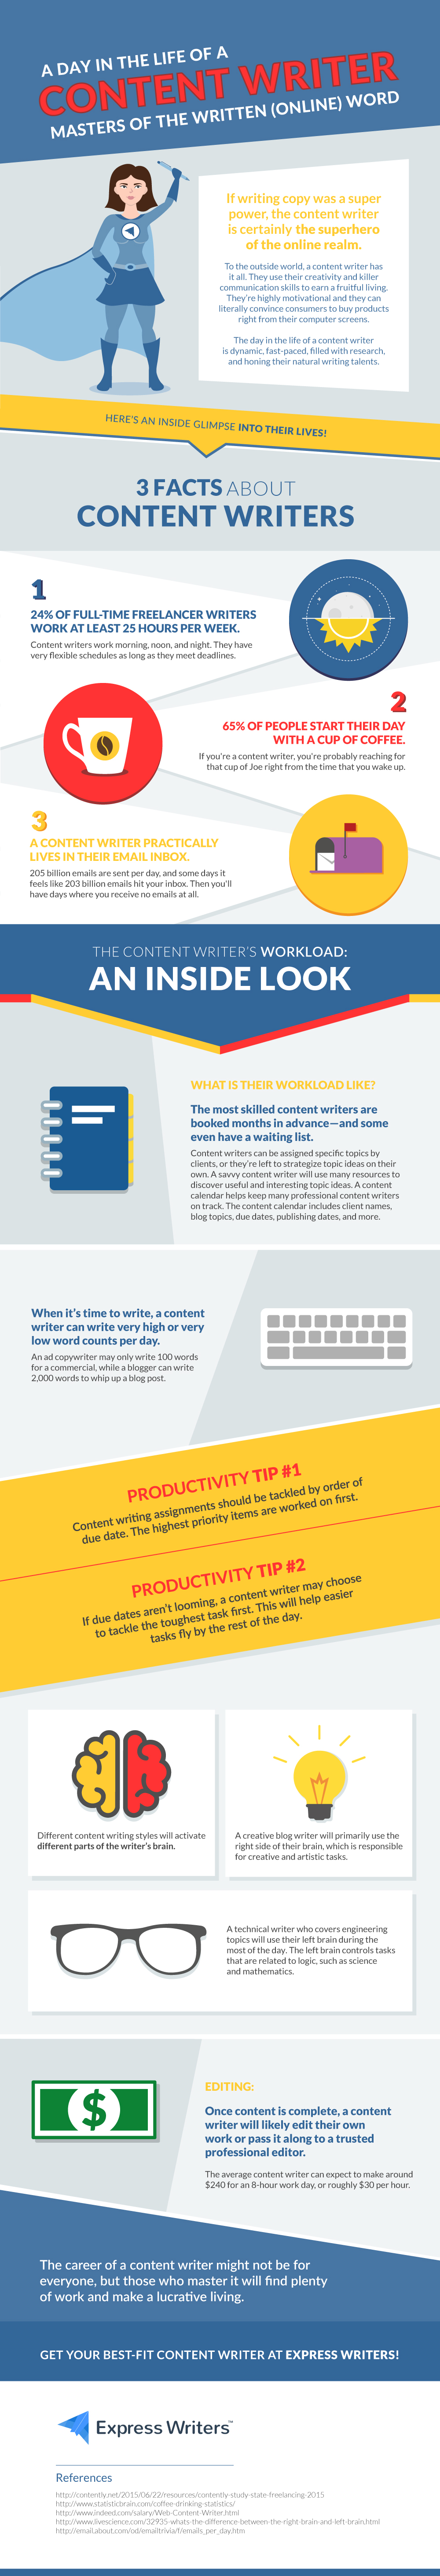 content writer life infographic